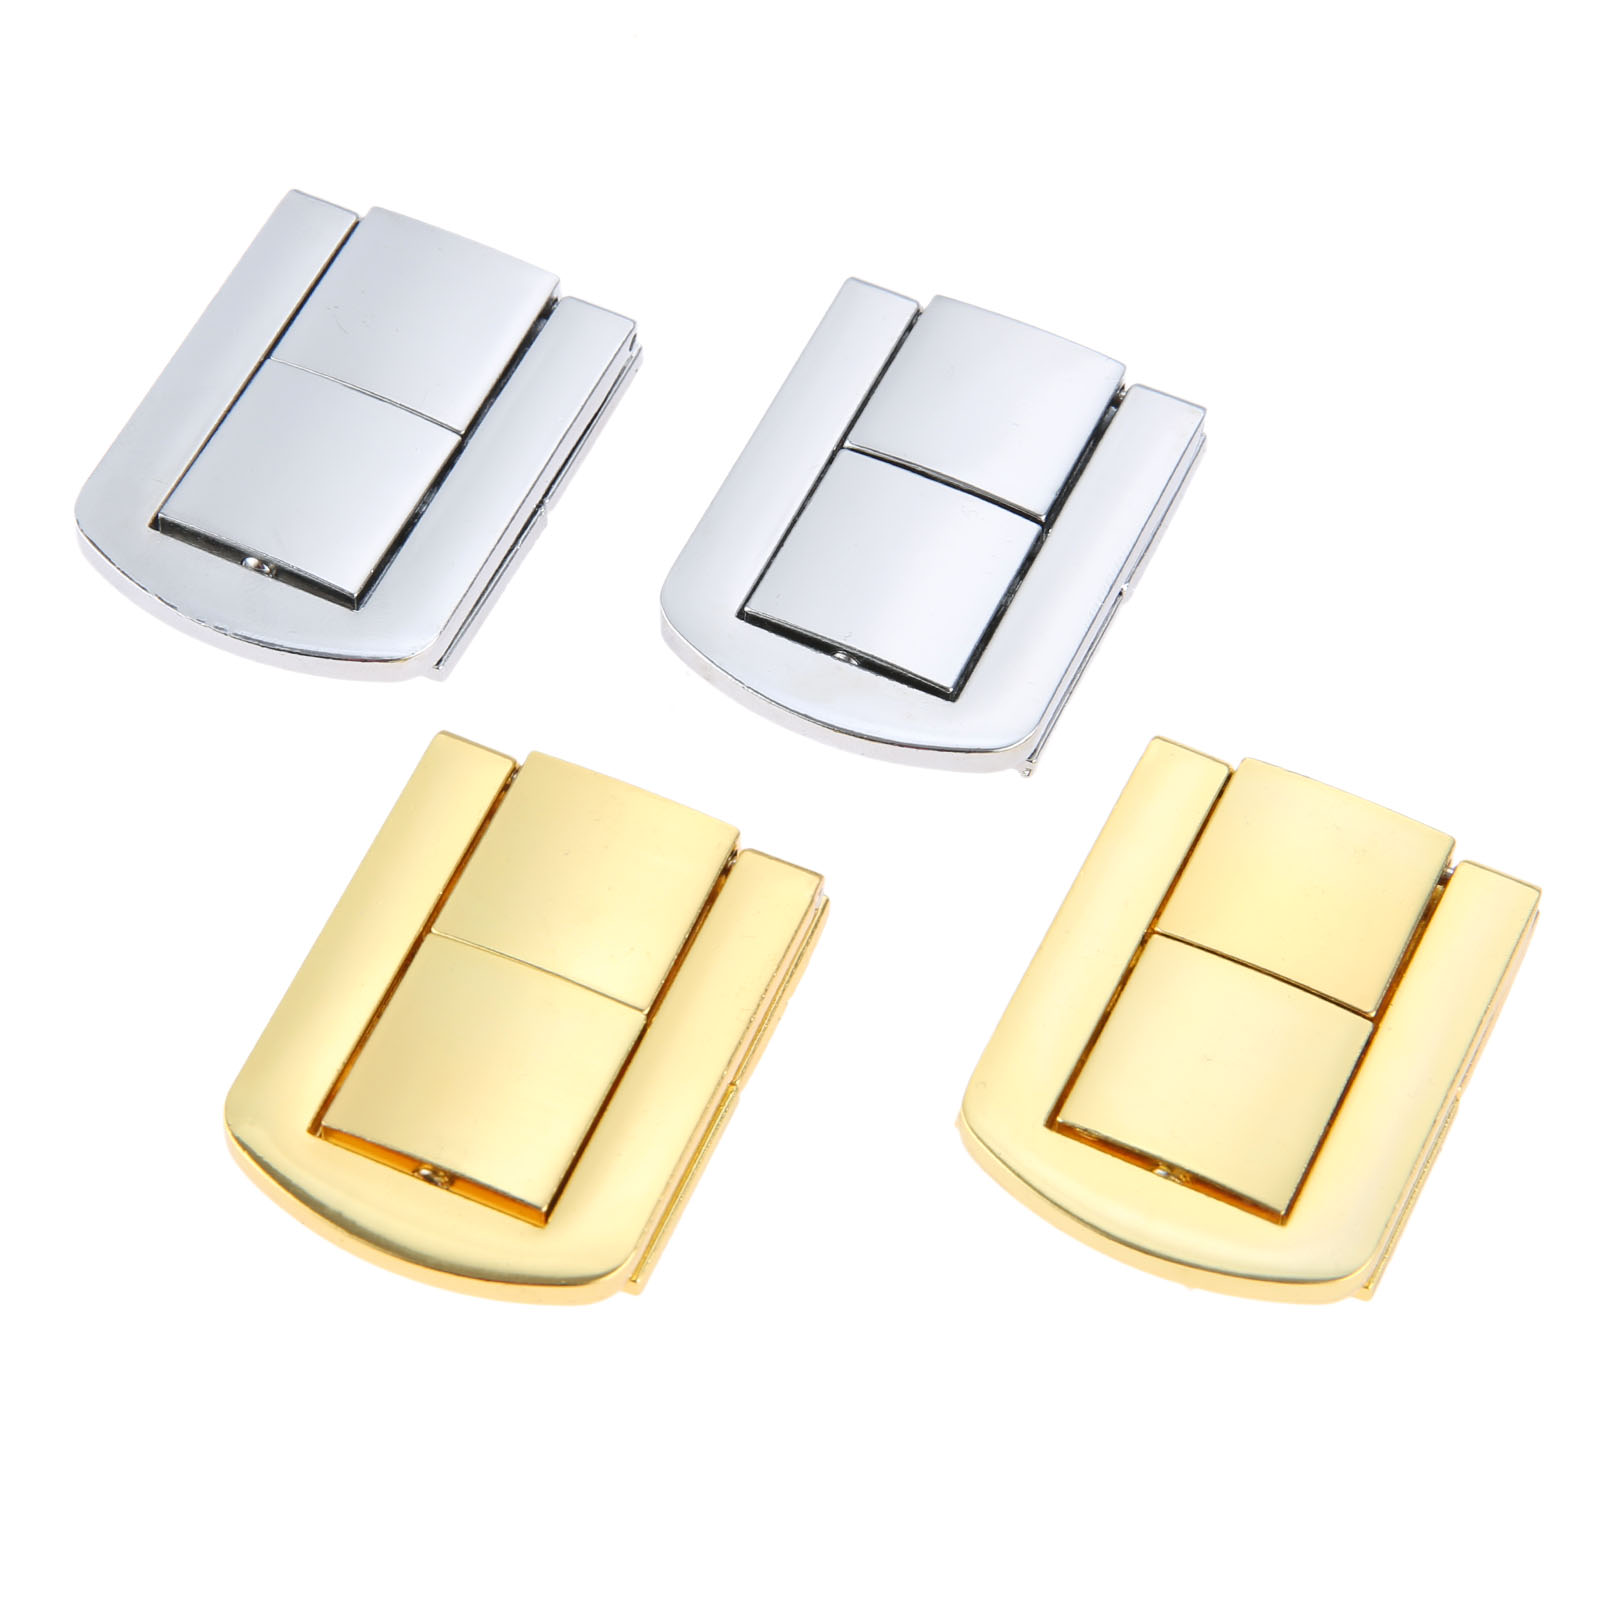 1Pc Antique Silver/Gold Lock Zinc Alloy Buckle Wooden Wine Gift Box Lock Buckle Box Latch Clasps With Screws 43x32m